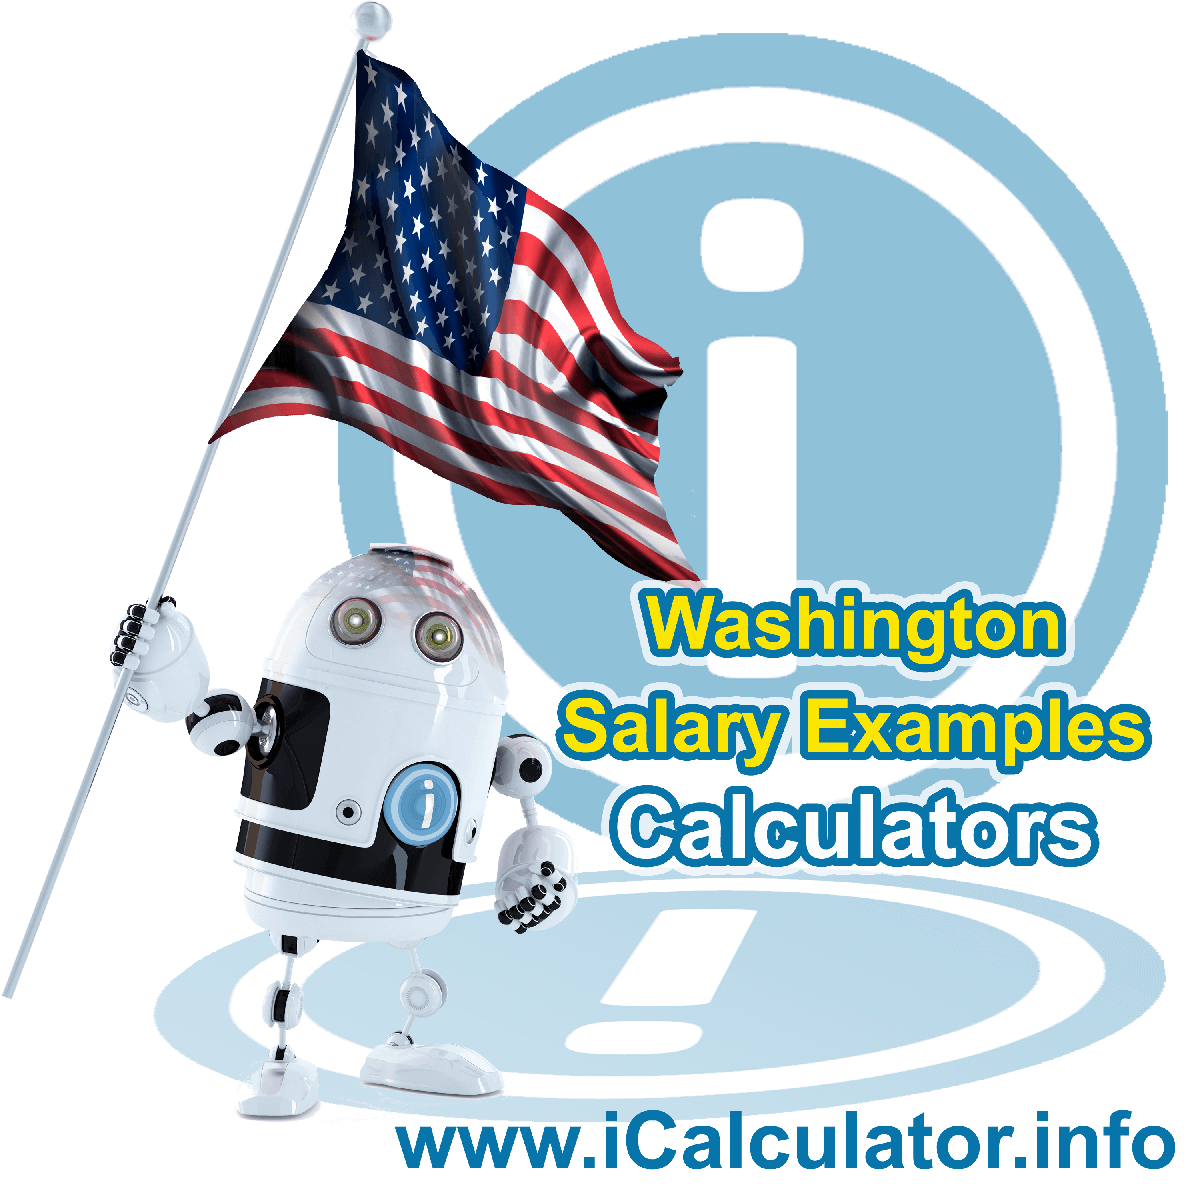 Washington Salary Example for $170,000.00 in 2020 | iCalculator | $170,000.00 salary example for employee and employer paying Washington State tincome taxes. Detailed salary after tax calculation including Washington State Tax, Federal State Tax, Medicare Deductions, Social Security, Capital Gains and other income tax and salary deductions complete with supporting Washington state tax tables